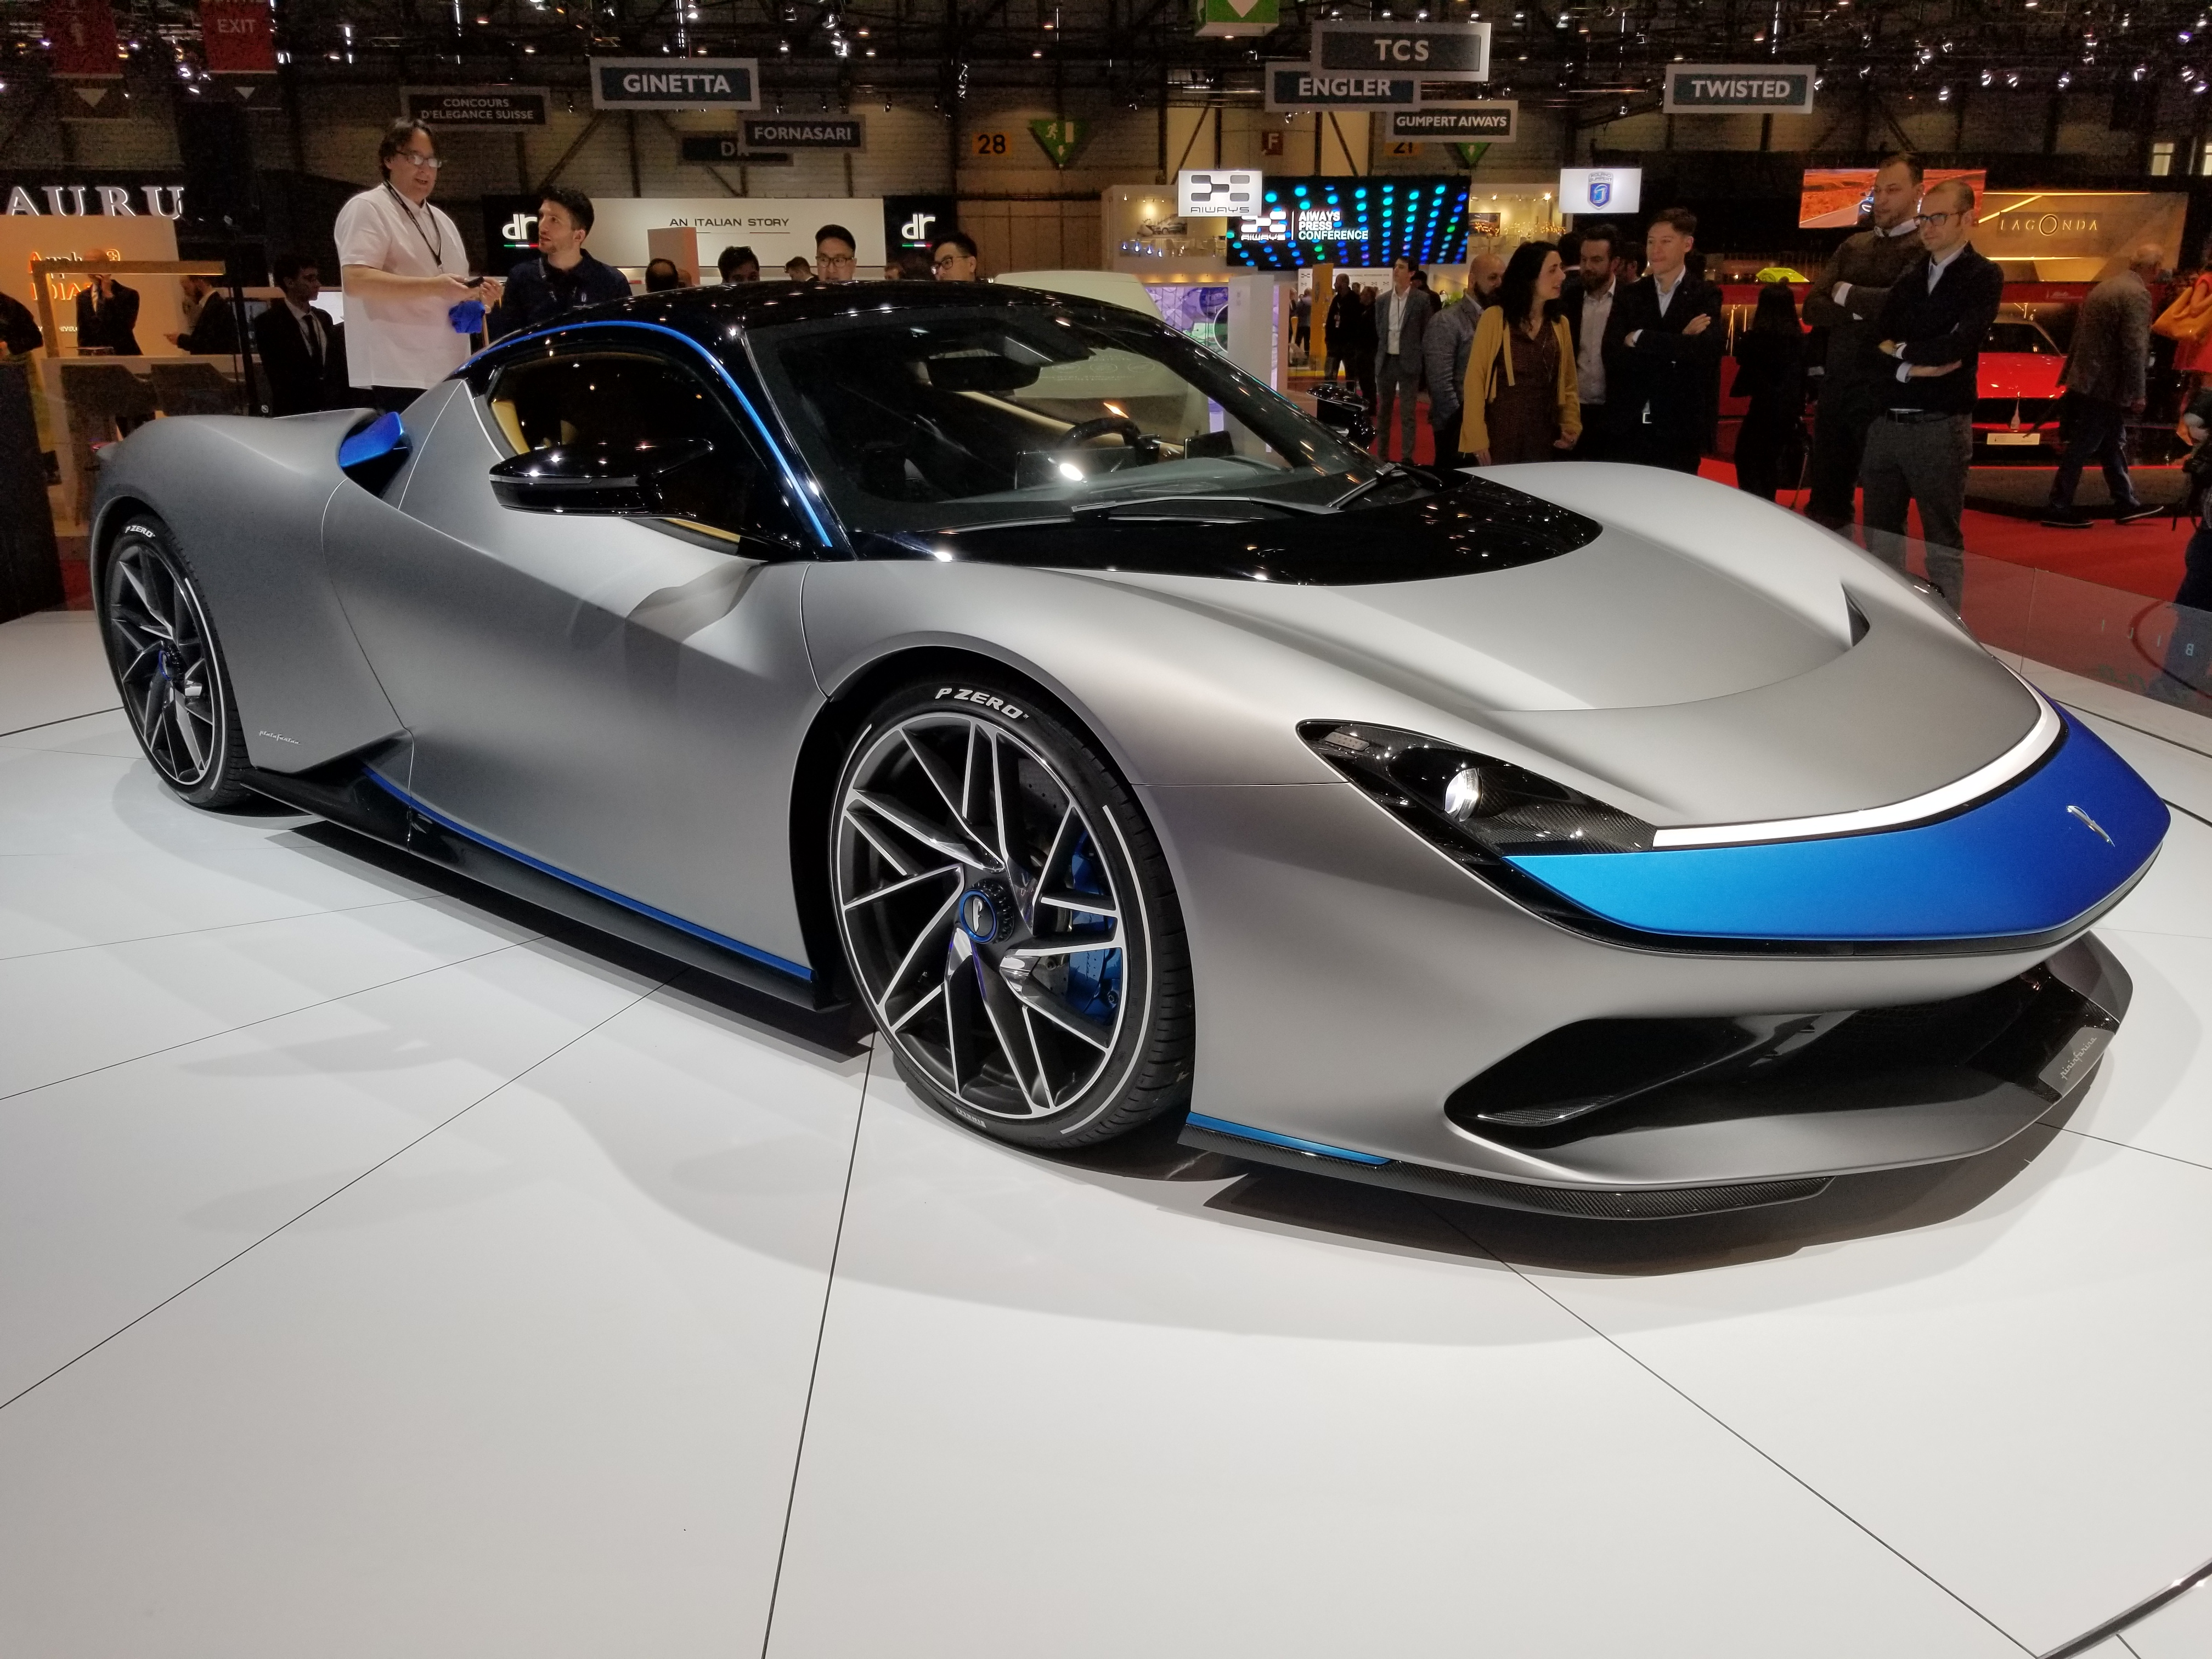 The 1,900 HP 2020 Pininfarina Battista Can Touch 62 MPH In Less Than Two Seconds! Pictures ...